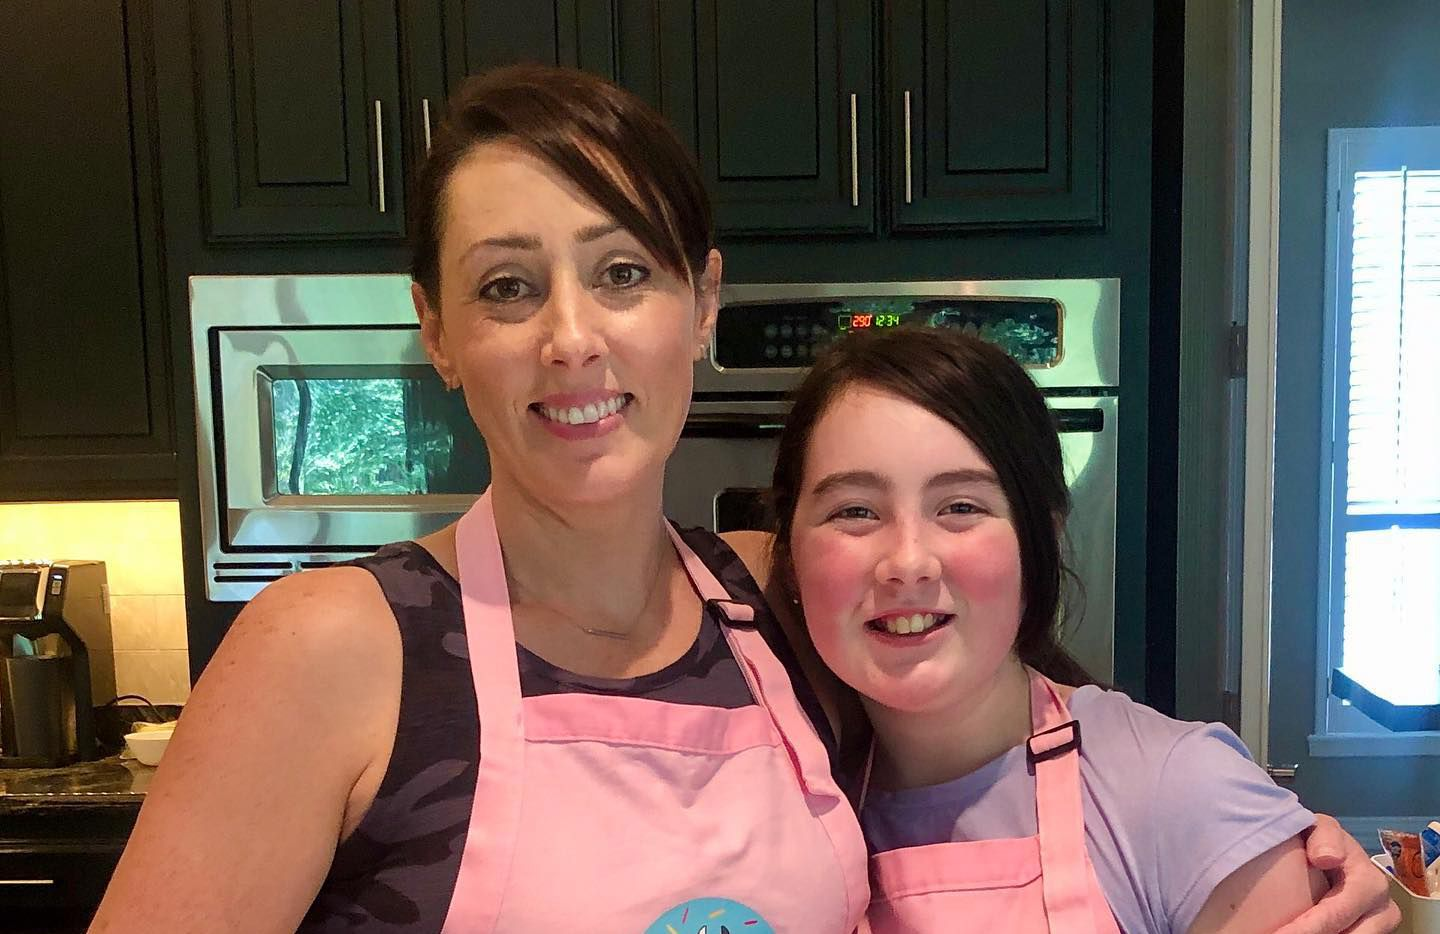 Millie and Olive Shaw, owners of MooCakes and Treats in Southlake, started their floral cupcake business last year.